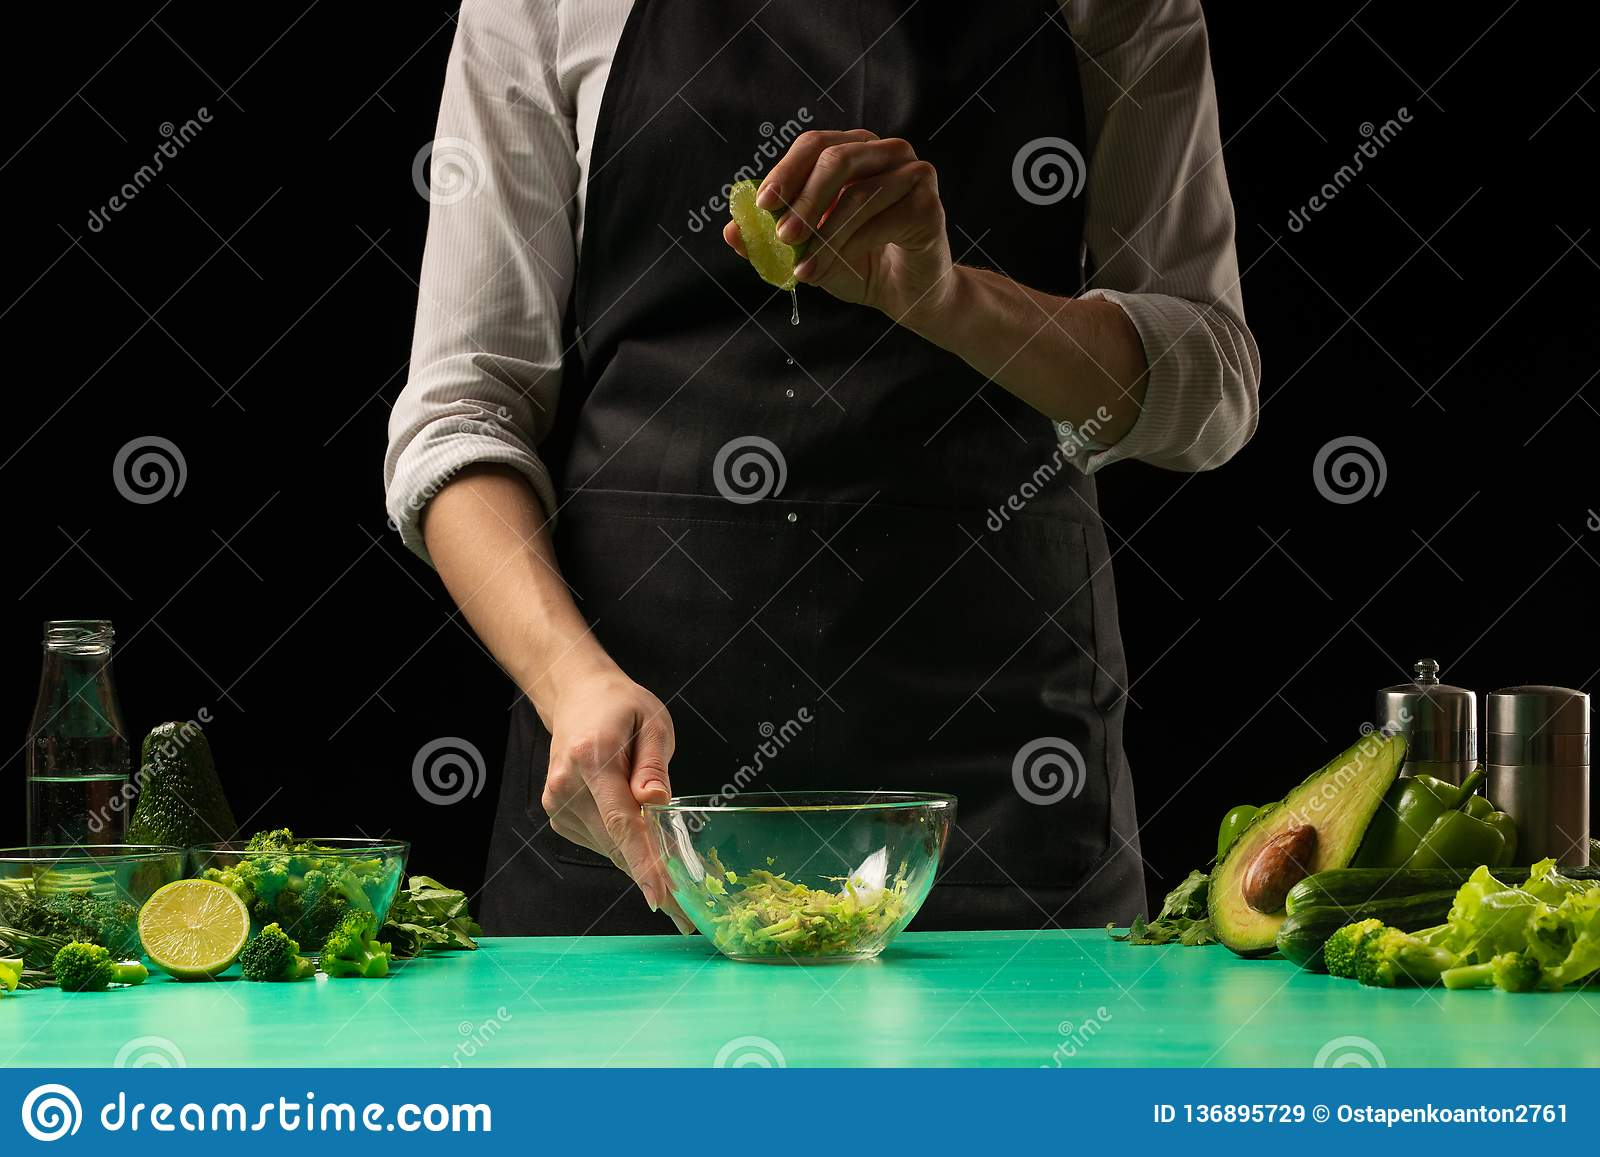 Chef on a black background pouring lime juice on vegetables for cooking cooking green detoxification smoothies. Healthy, clean